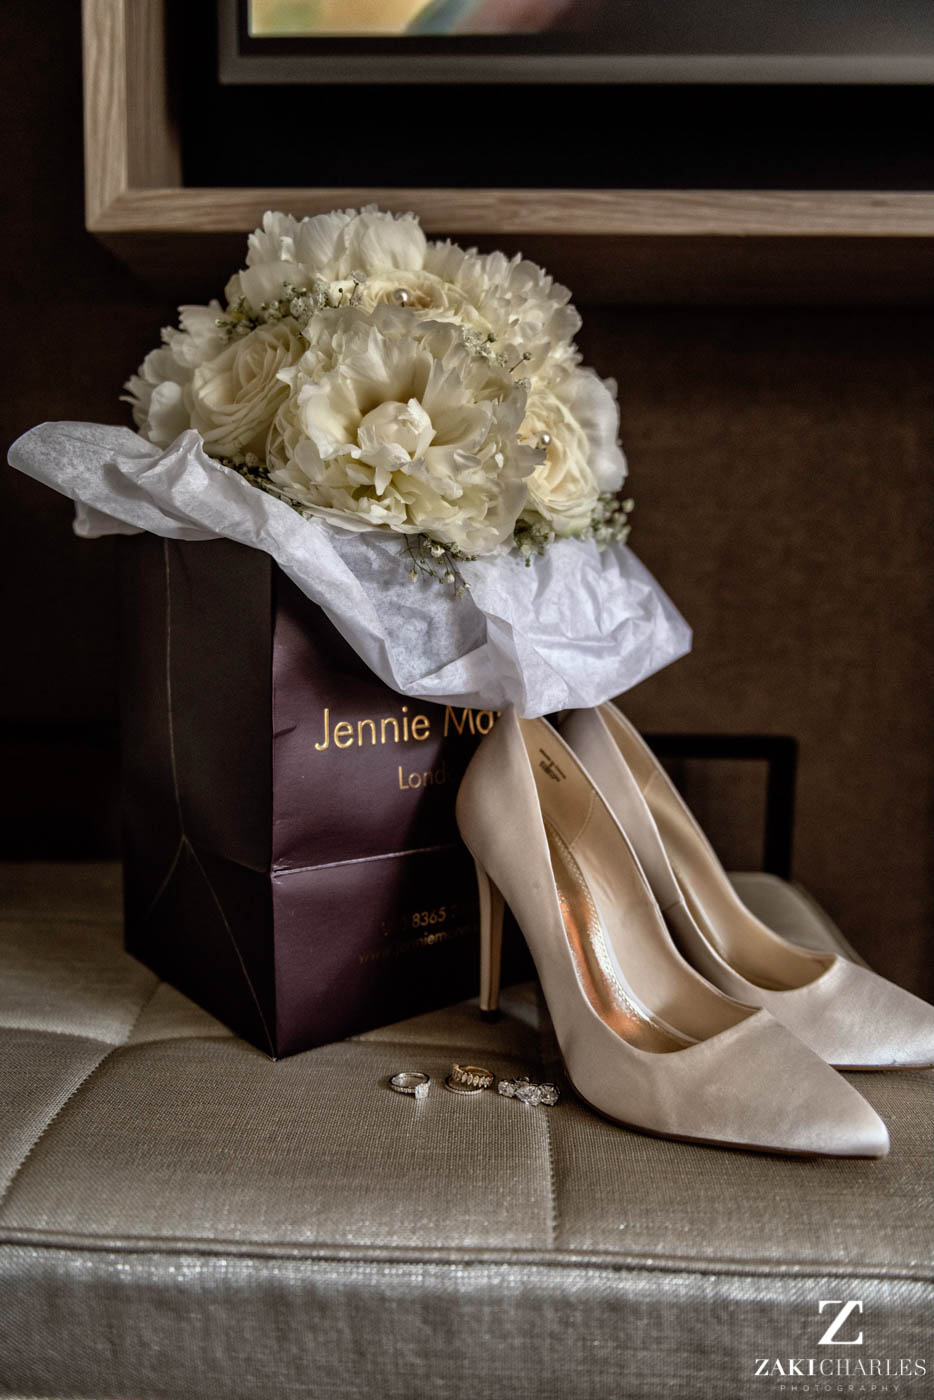 Details of the bride at Marriott Hotel Regents Park wedding venue